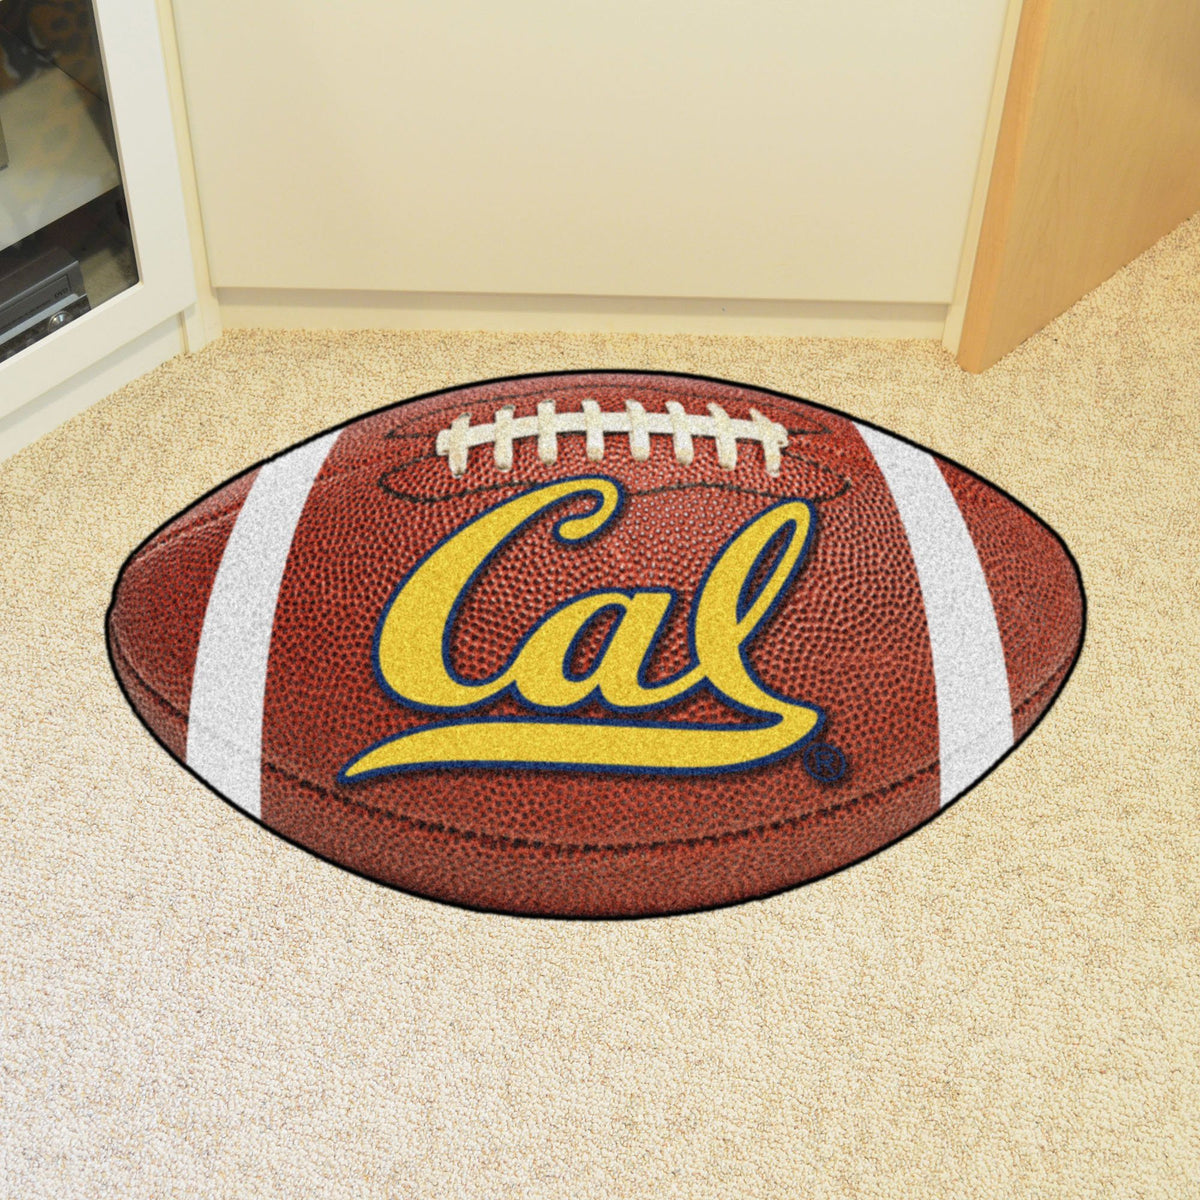 Collegiate - Football Mat: A - K Collegiate Mats, Rectangular Mats, Football Mat, Collegiate, Home Fan Mats Cal